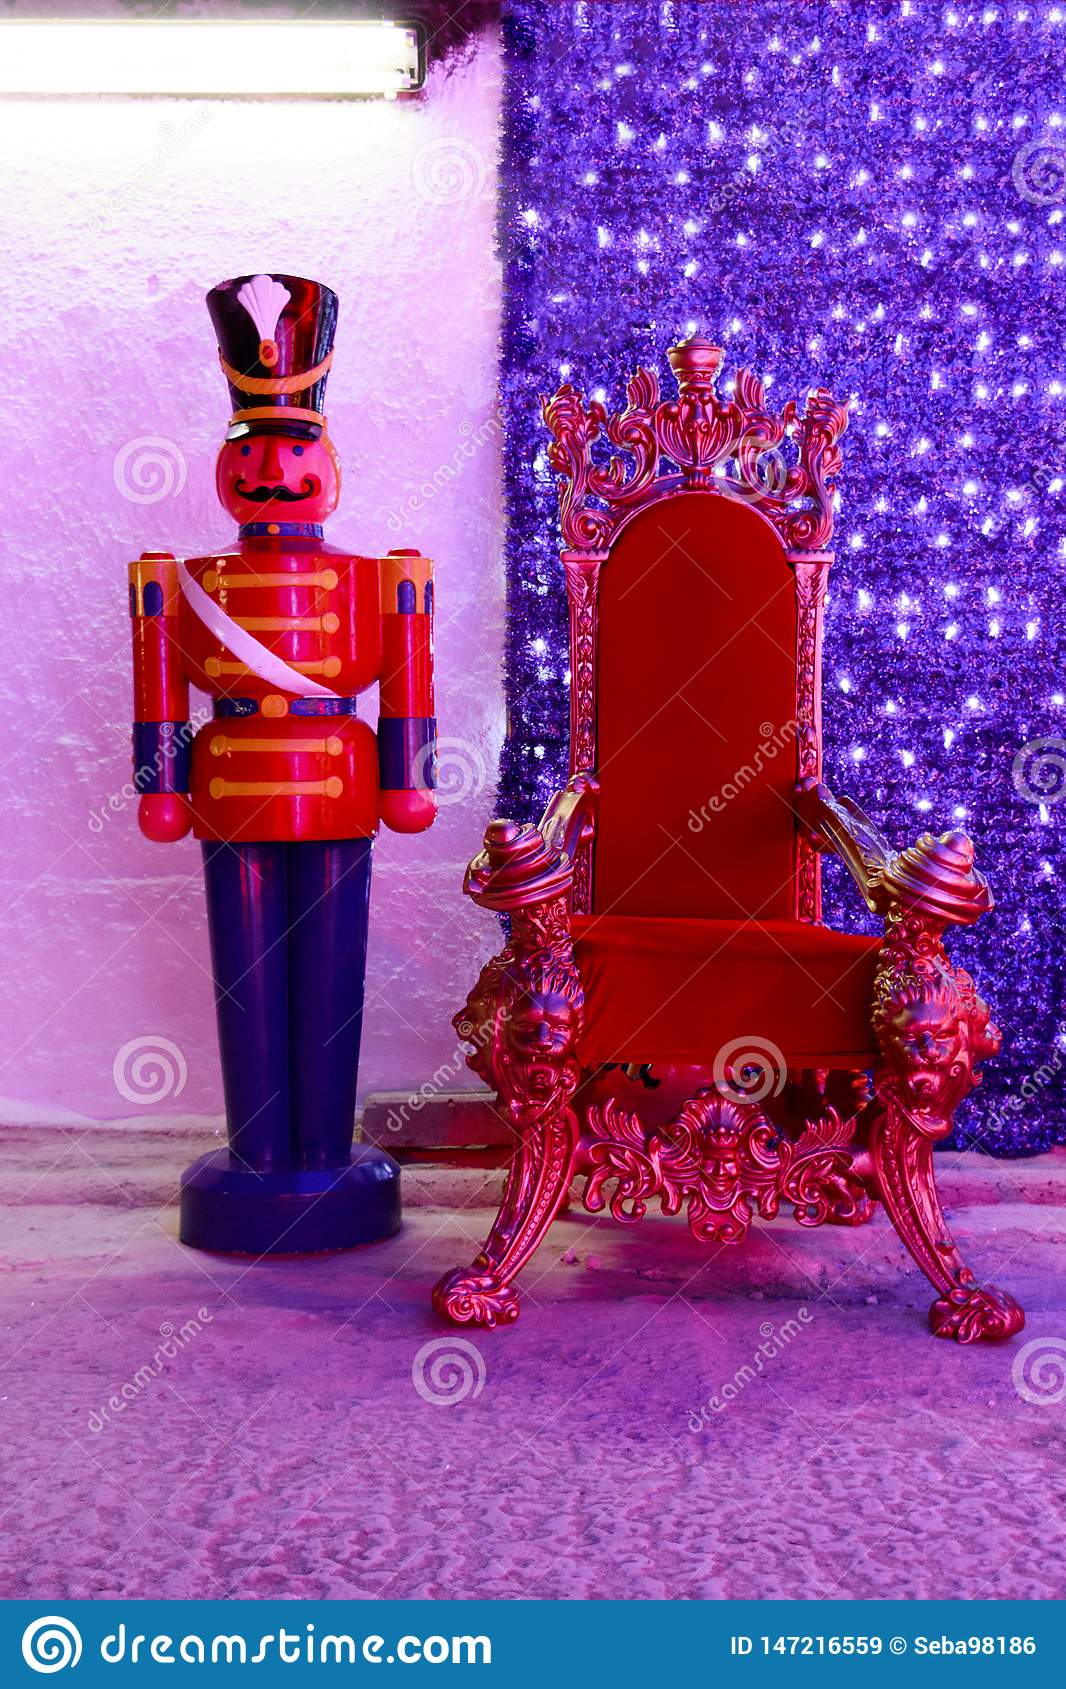 Red Christmas chair